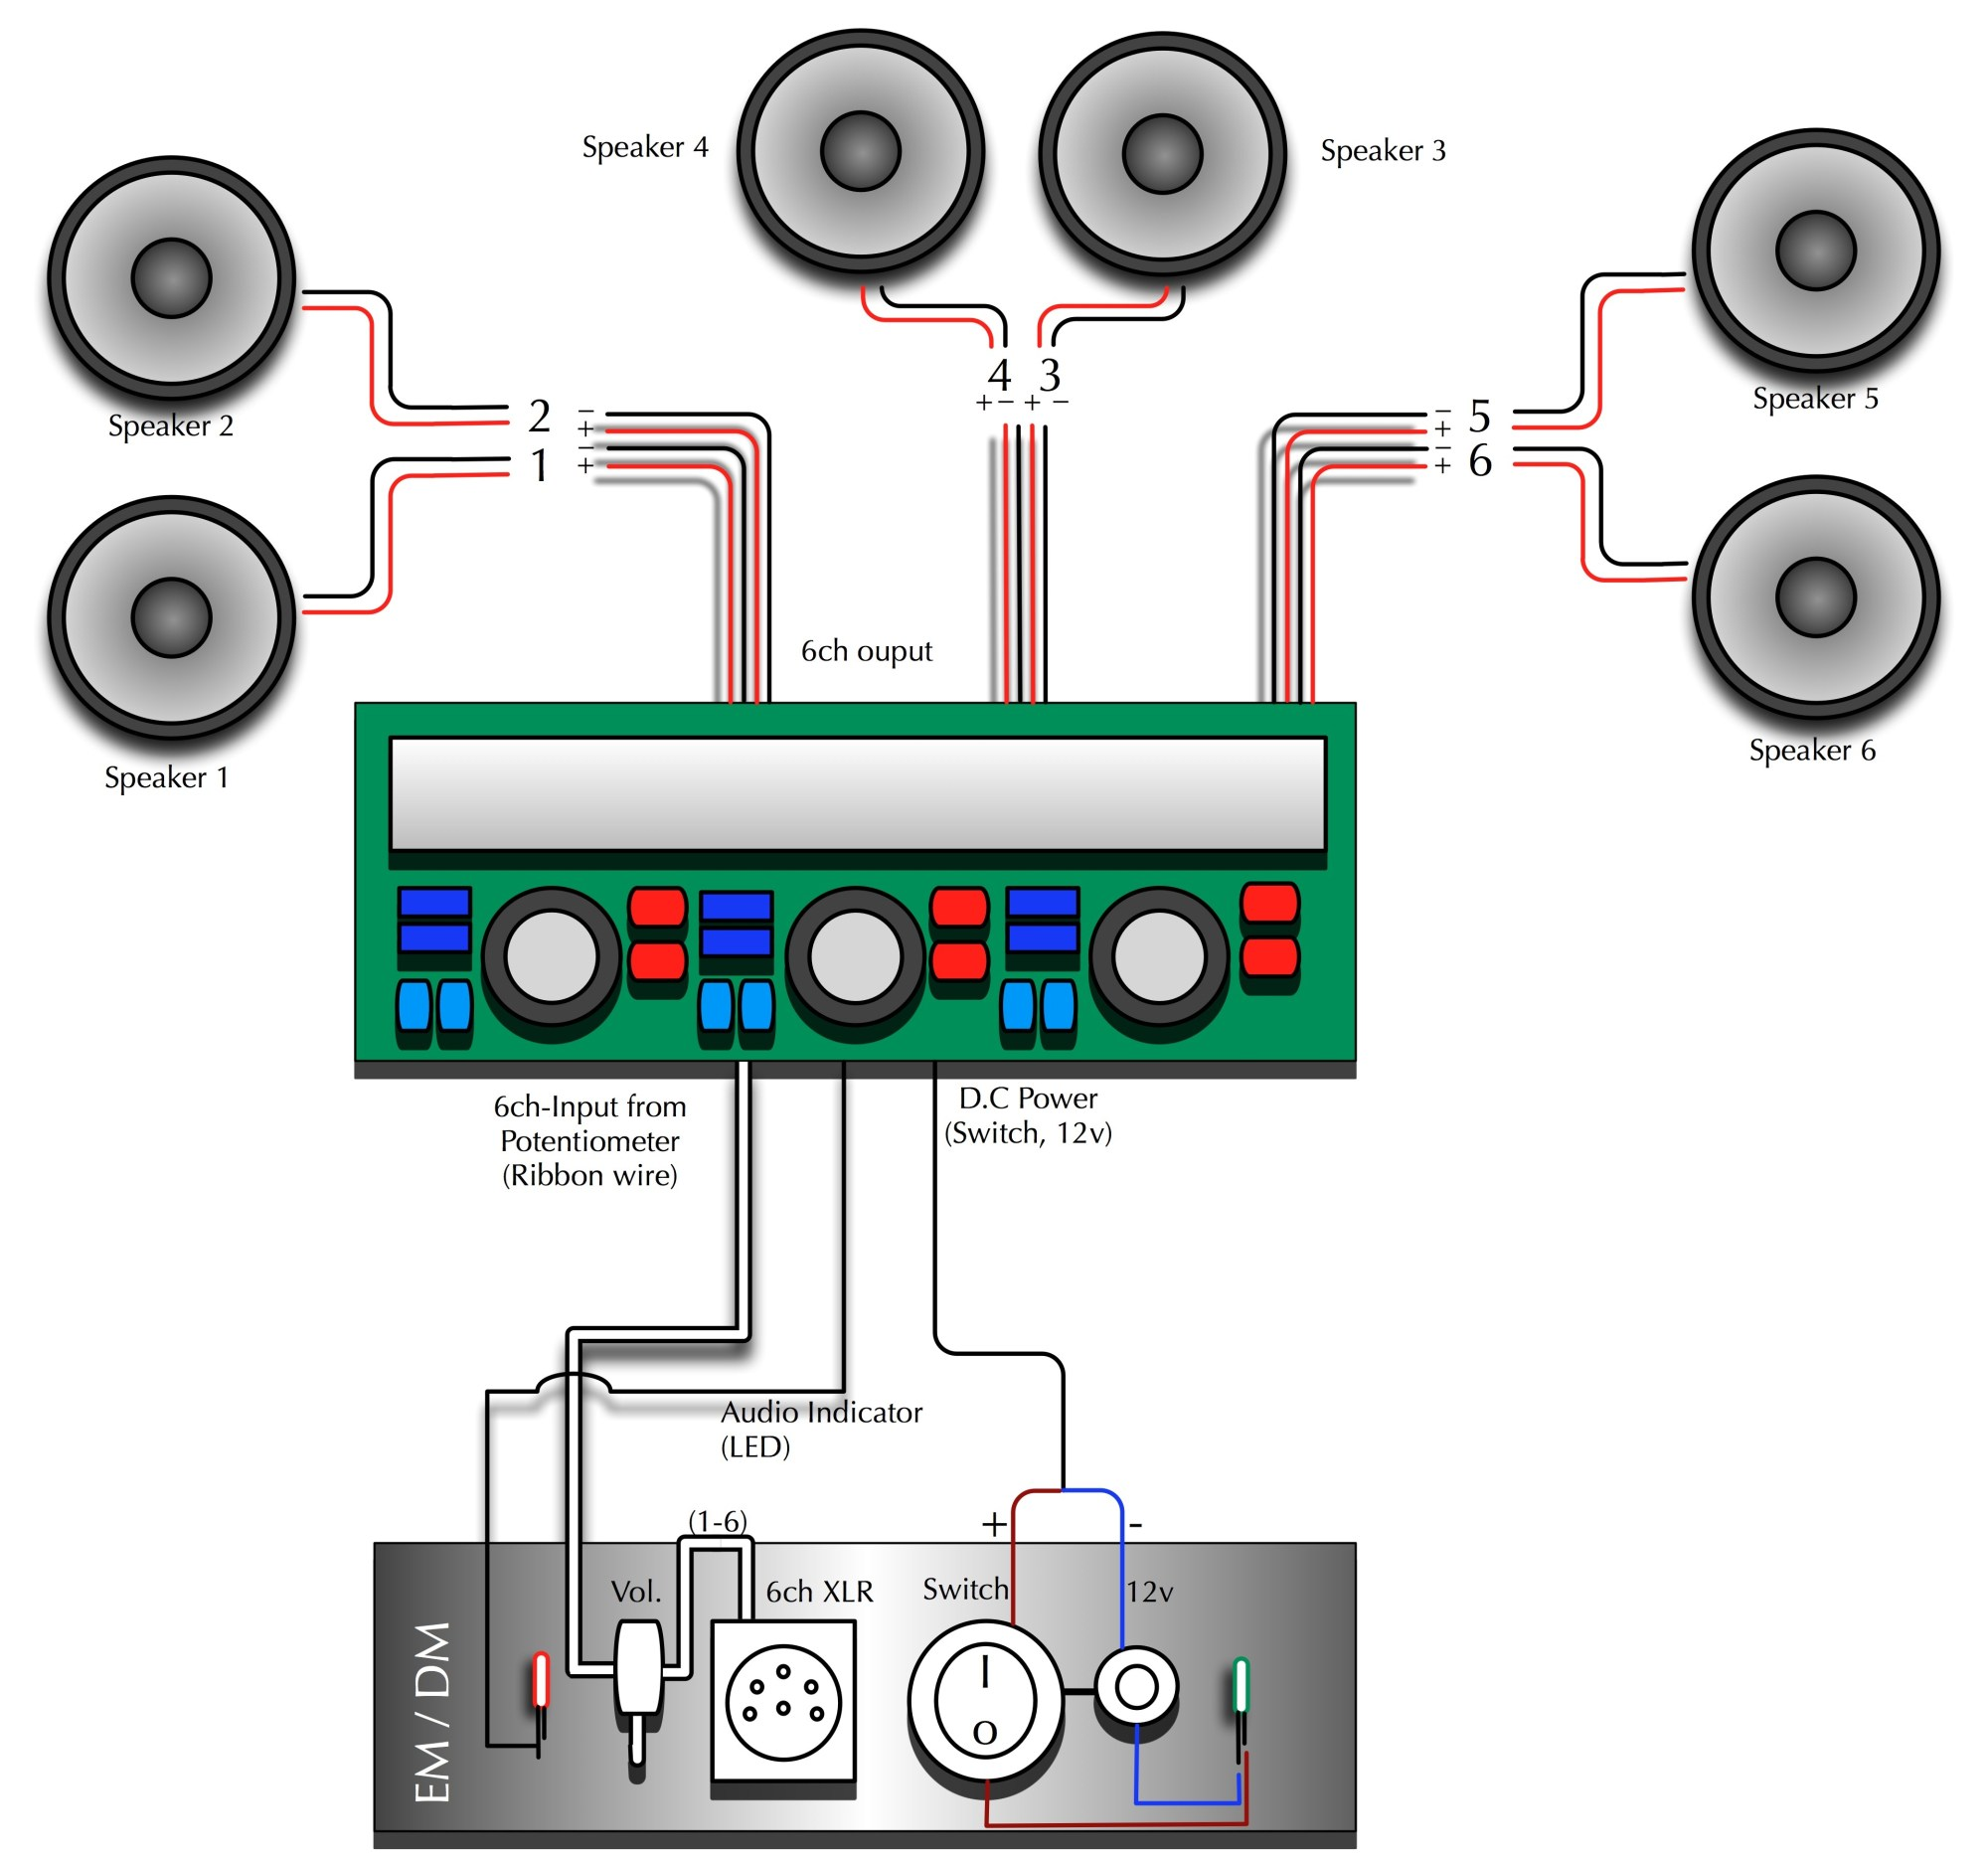 hight resolution of wiring 4 channel amp 6 speakers wiring diagram schema 6 speakers 4 channel amp wiring diagram 6 channel amp wiring